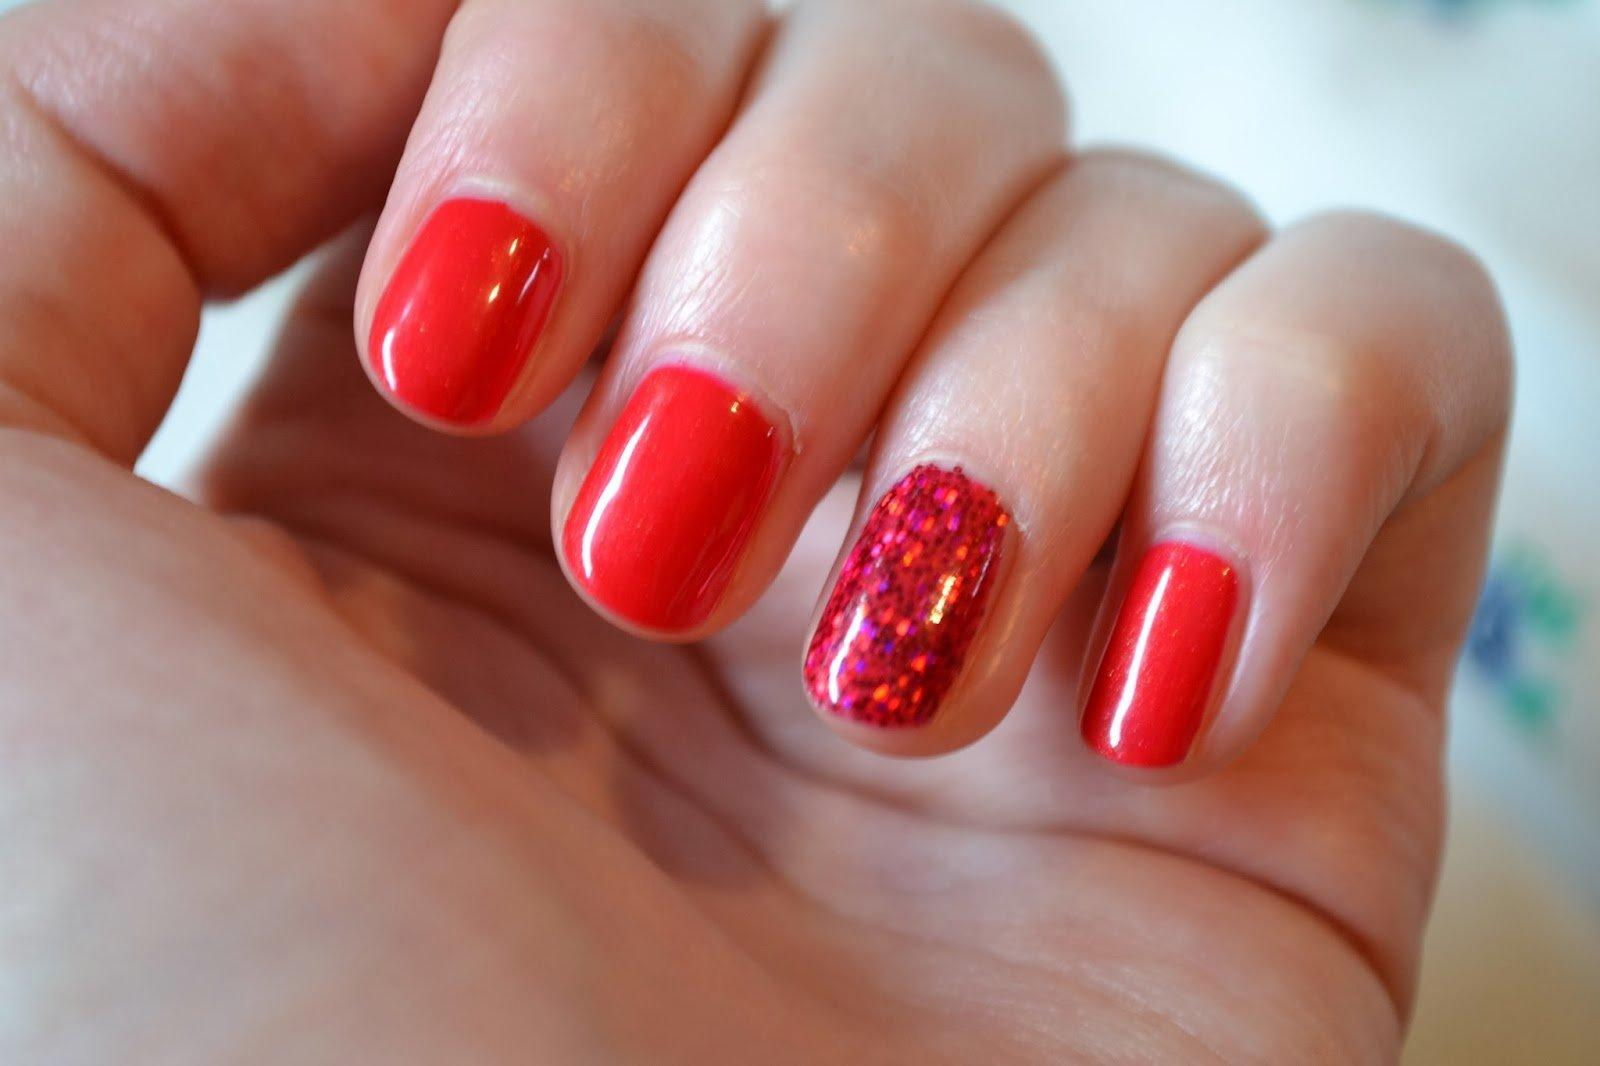 Simple Steps For Making Your Own Shellac Nails at Home